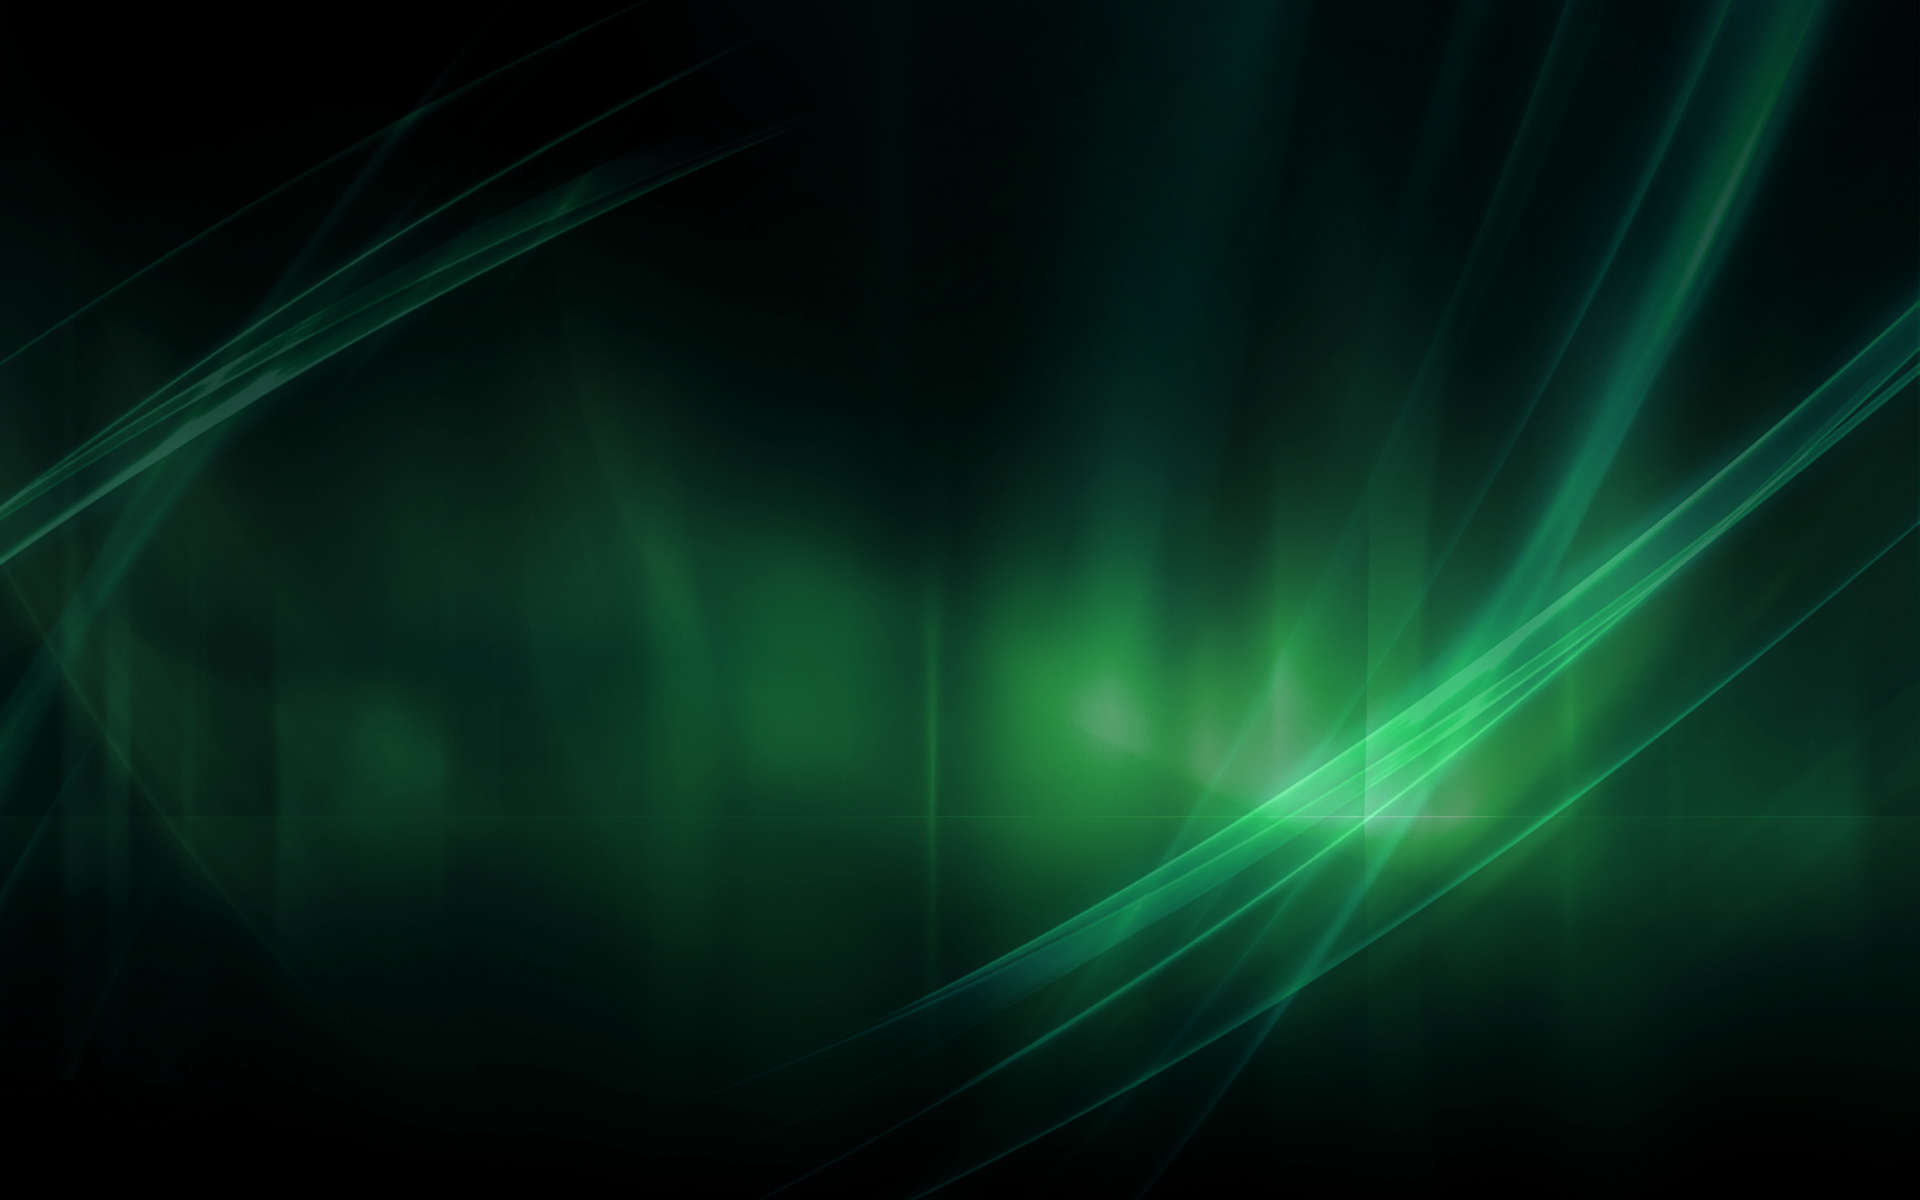 Hd wallpaper green - Green Widescreen Wallpaper